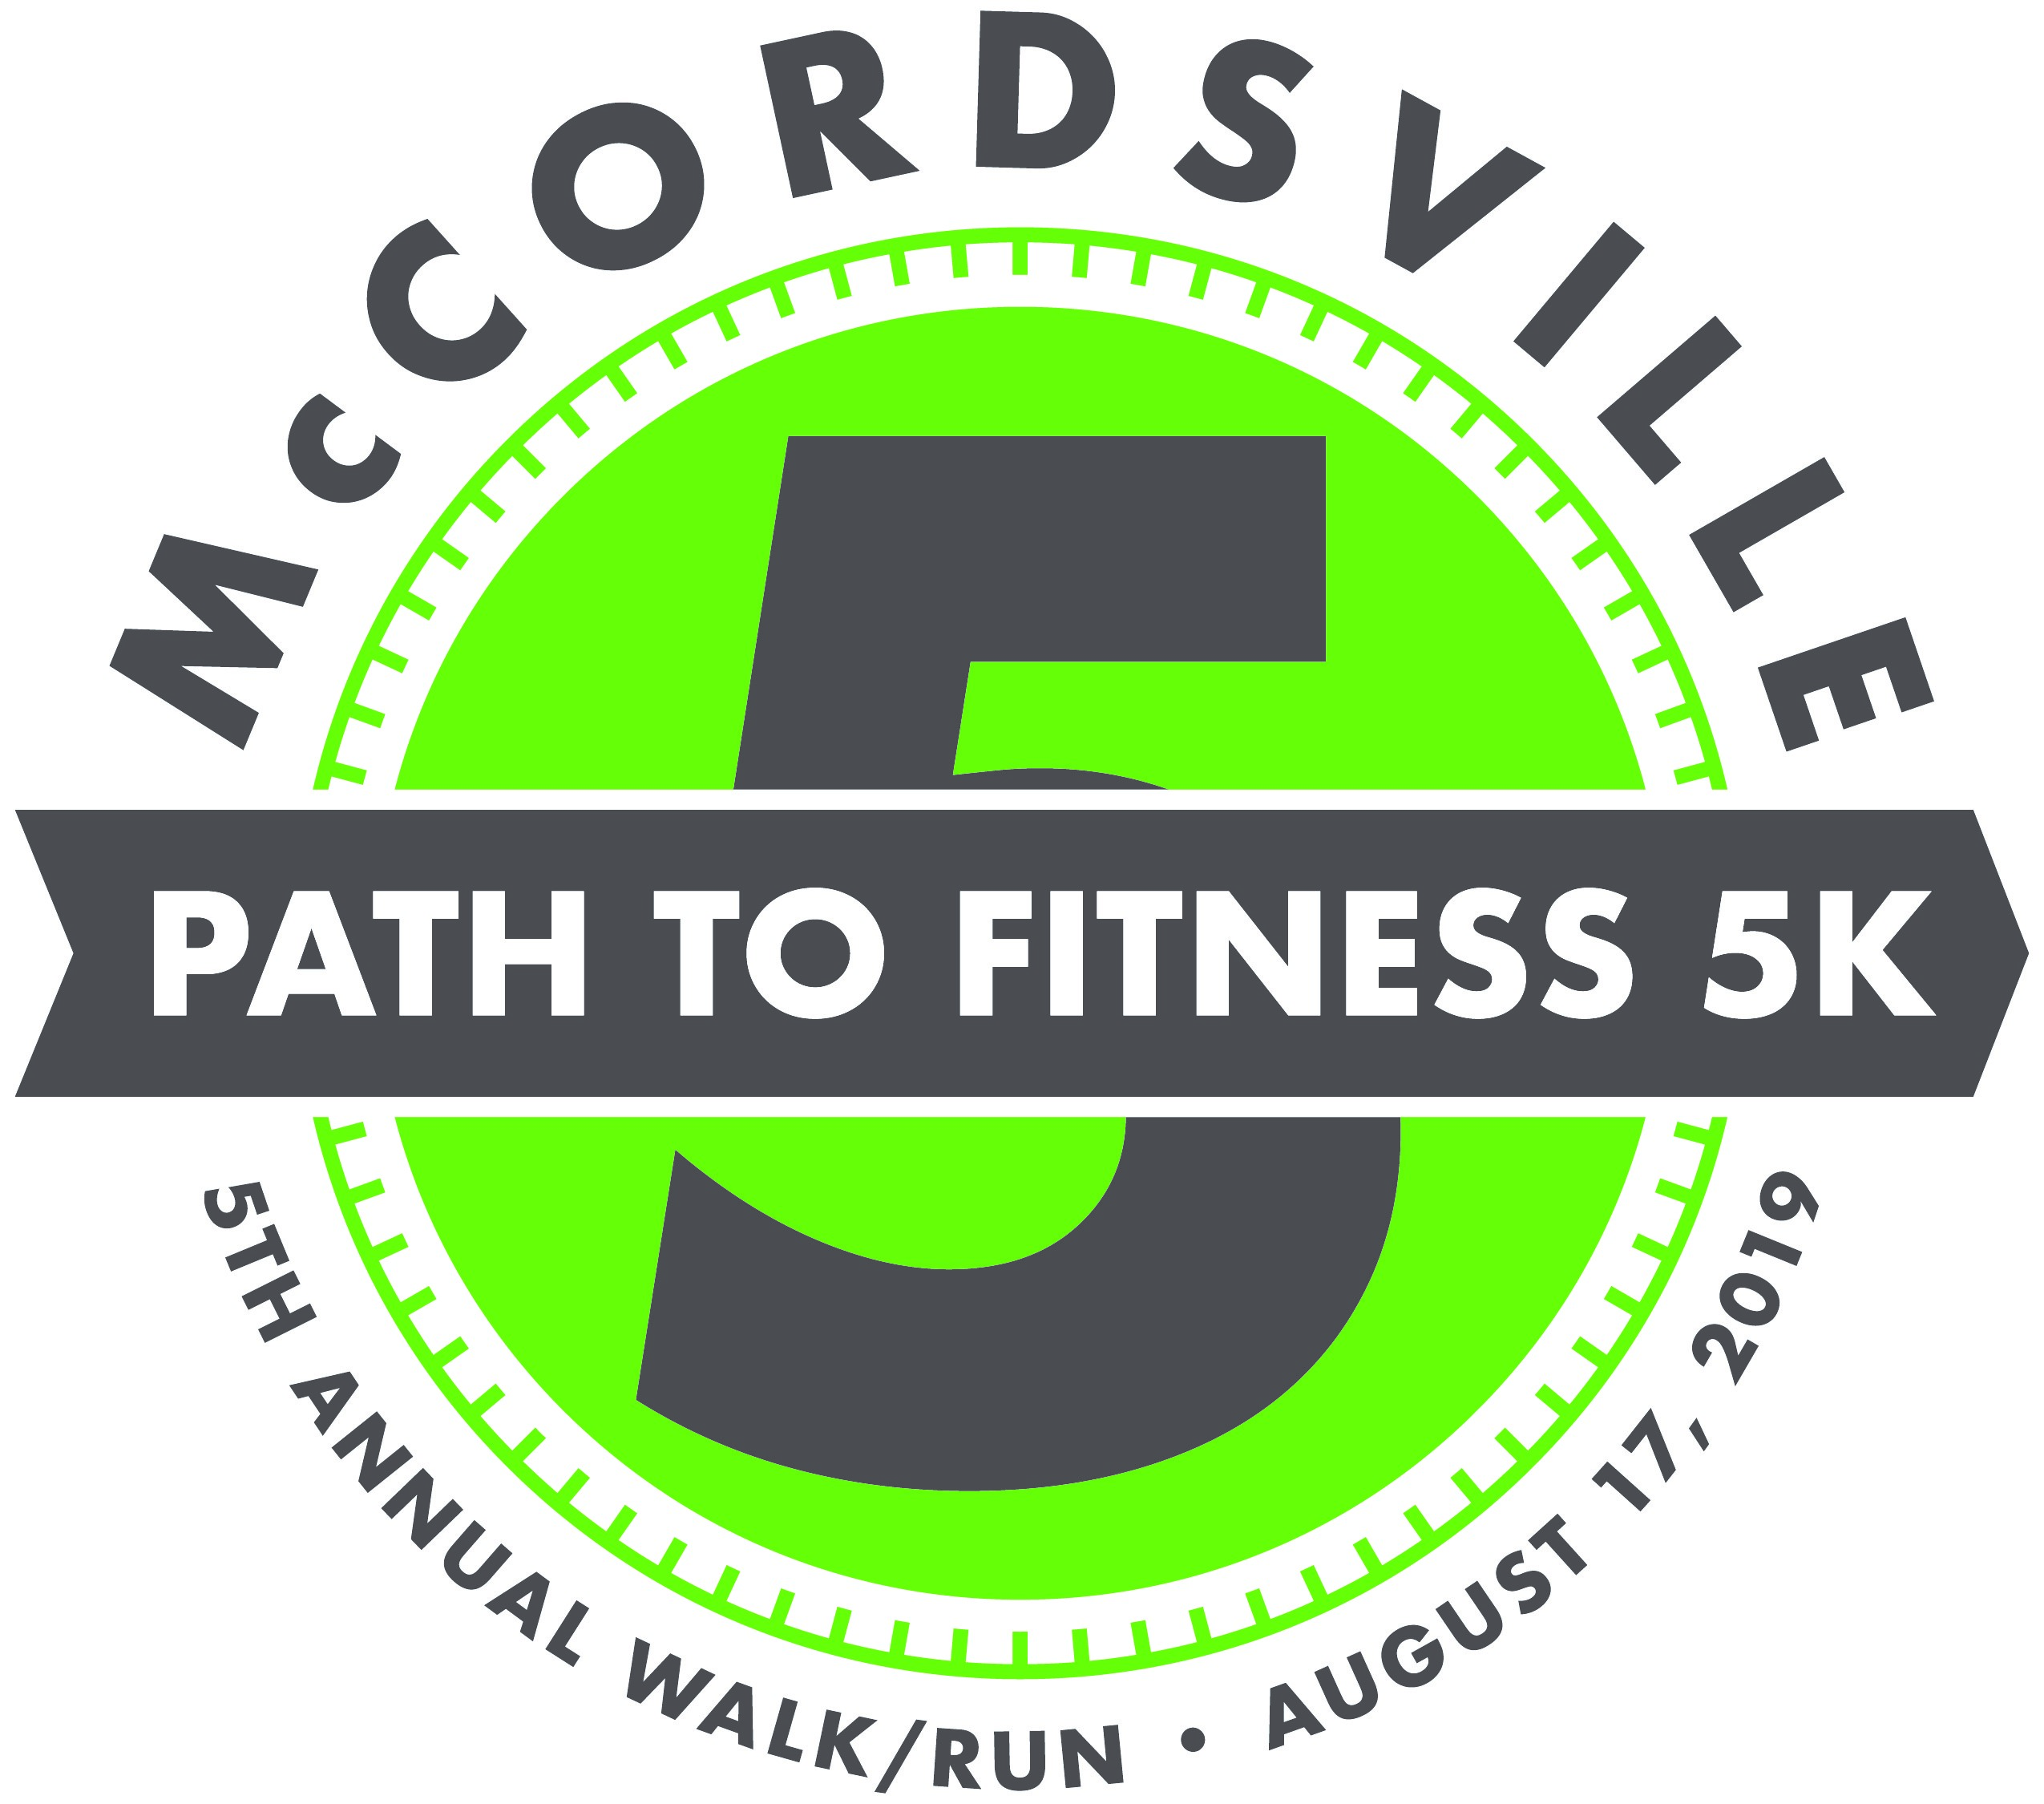 McCordsville Path to Fitness 5K